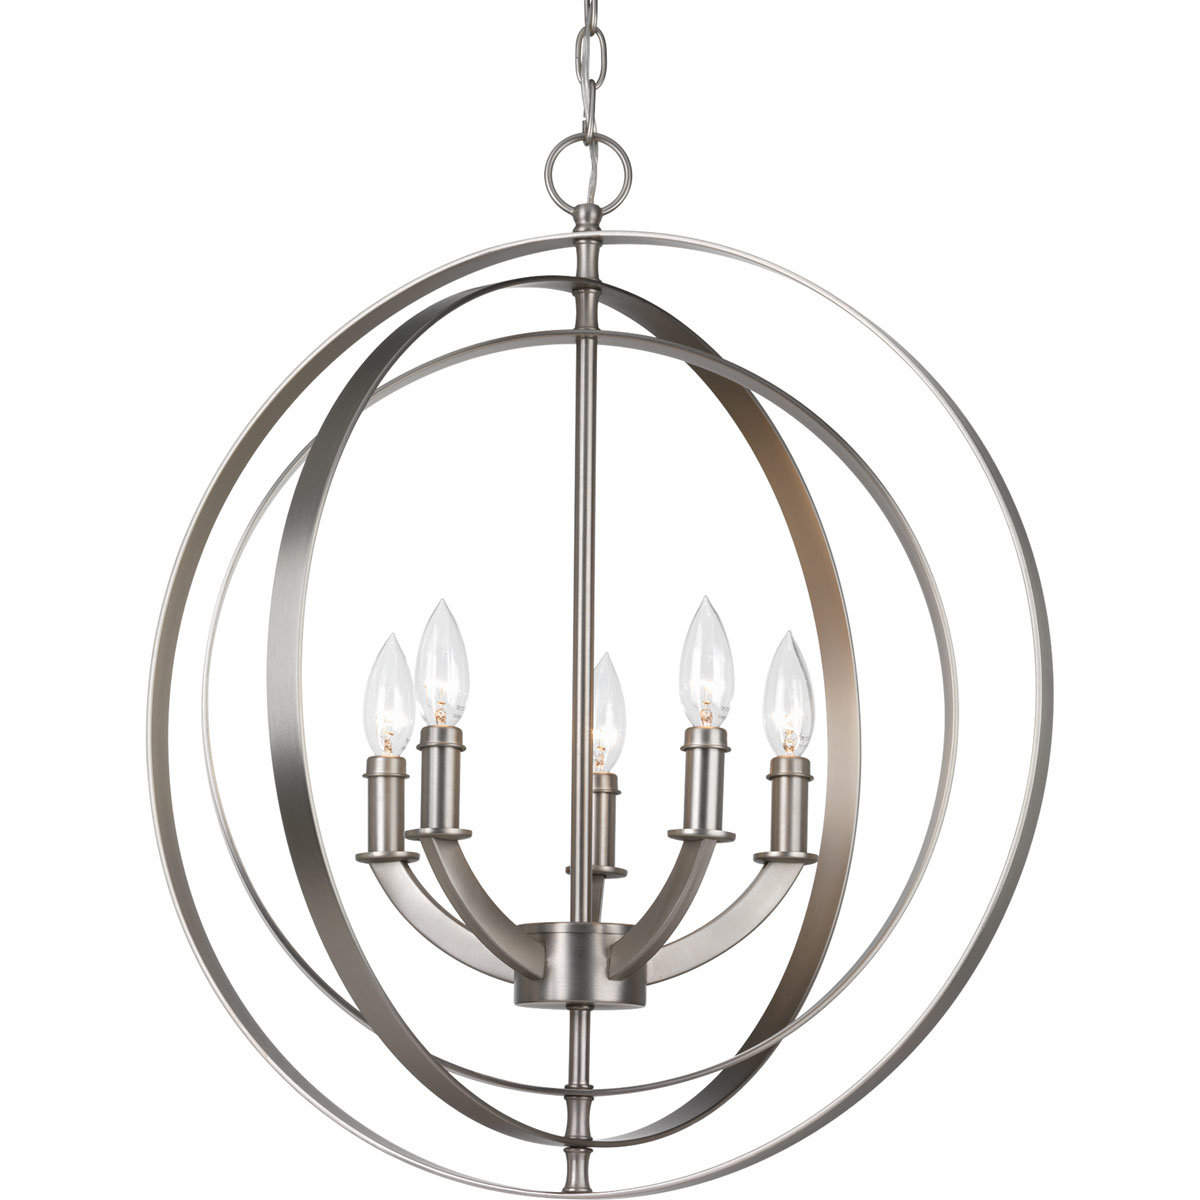 Widely Used Morganti 4 Light Chandeliers Throughout Morganti 5 Light Chandelier (View 20 of 20)